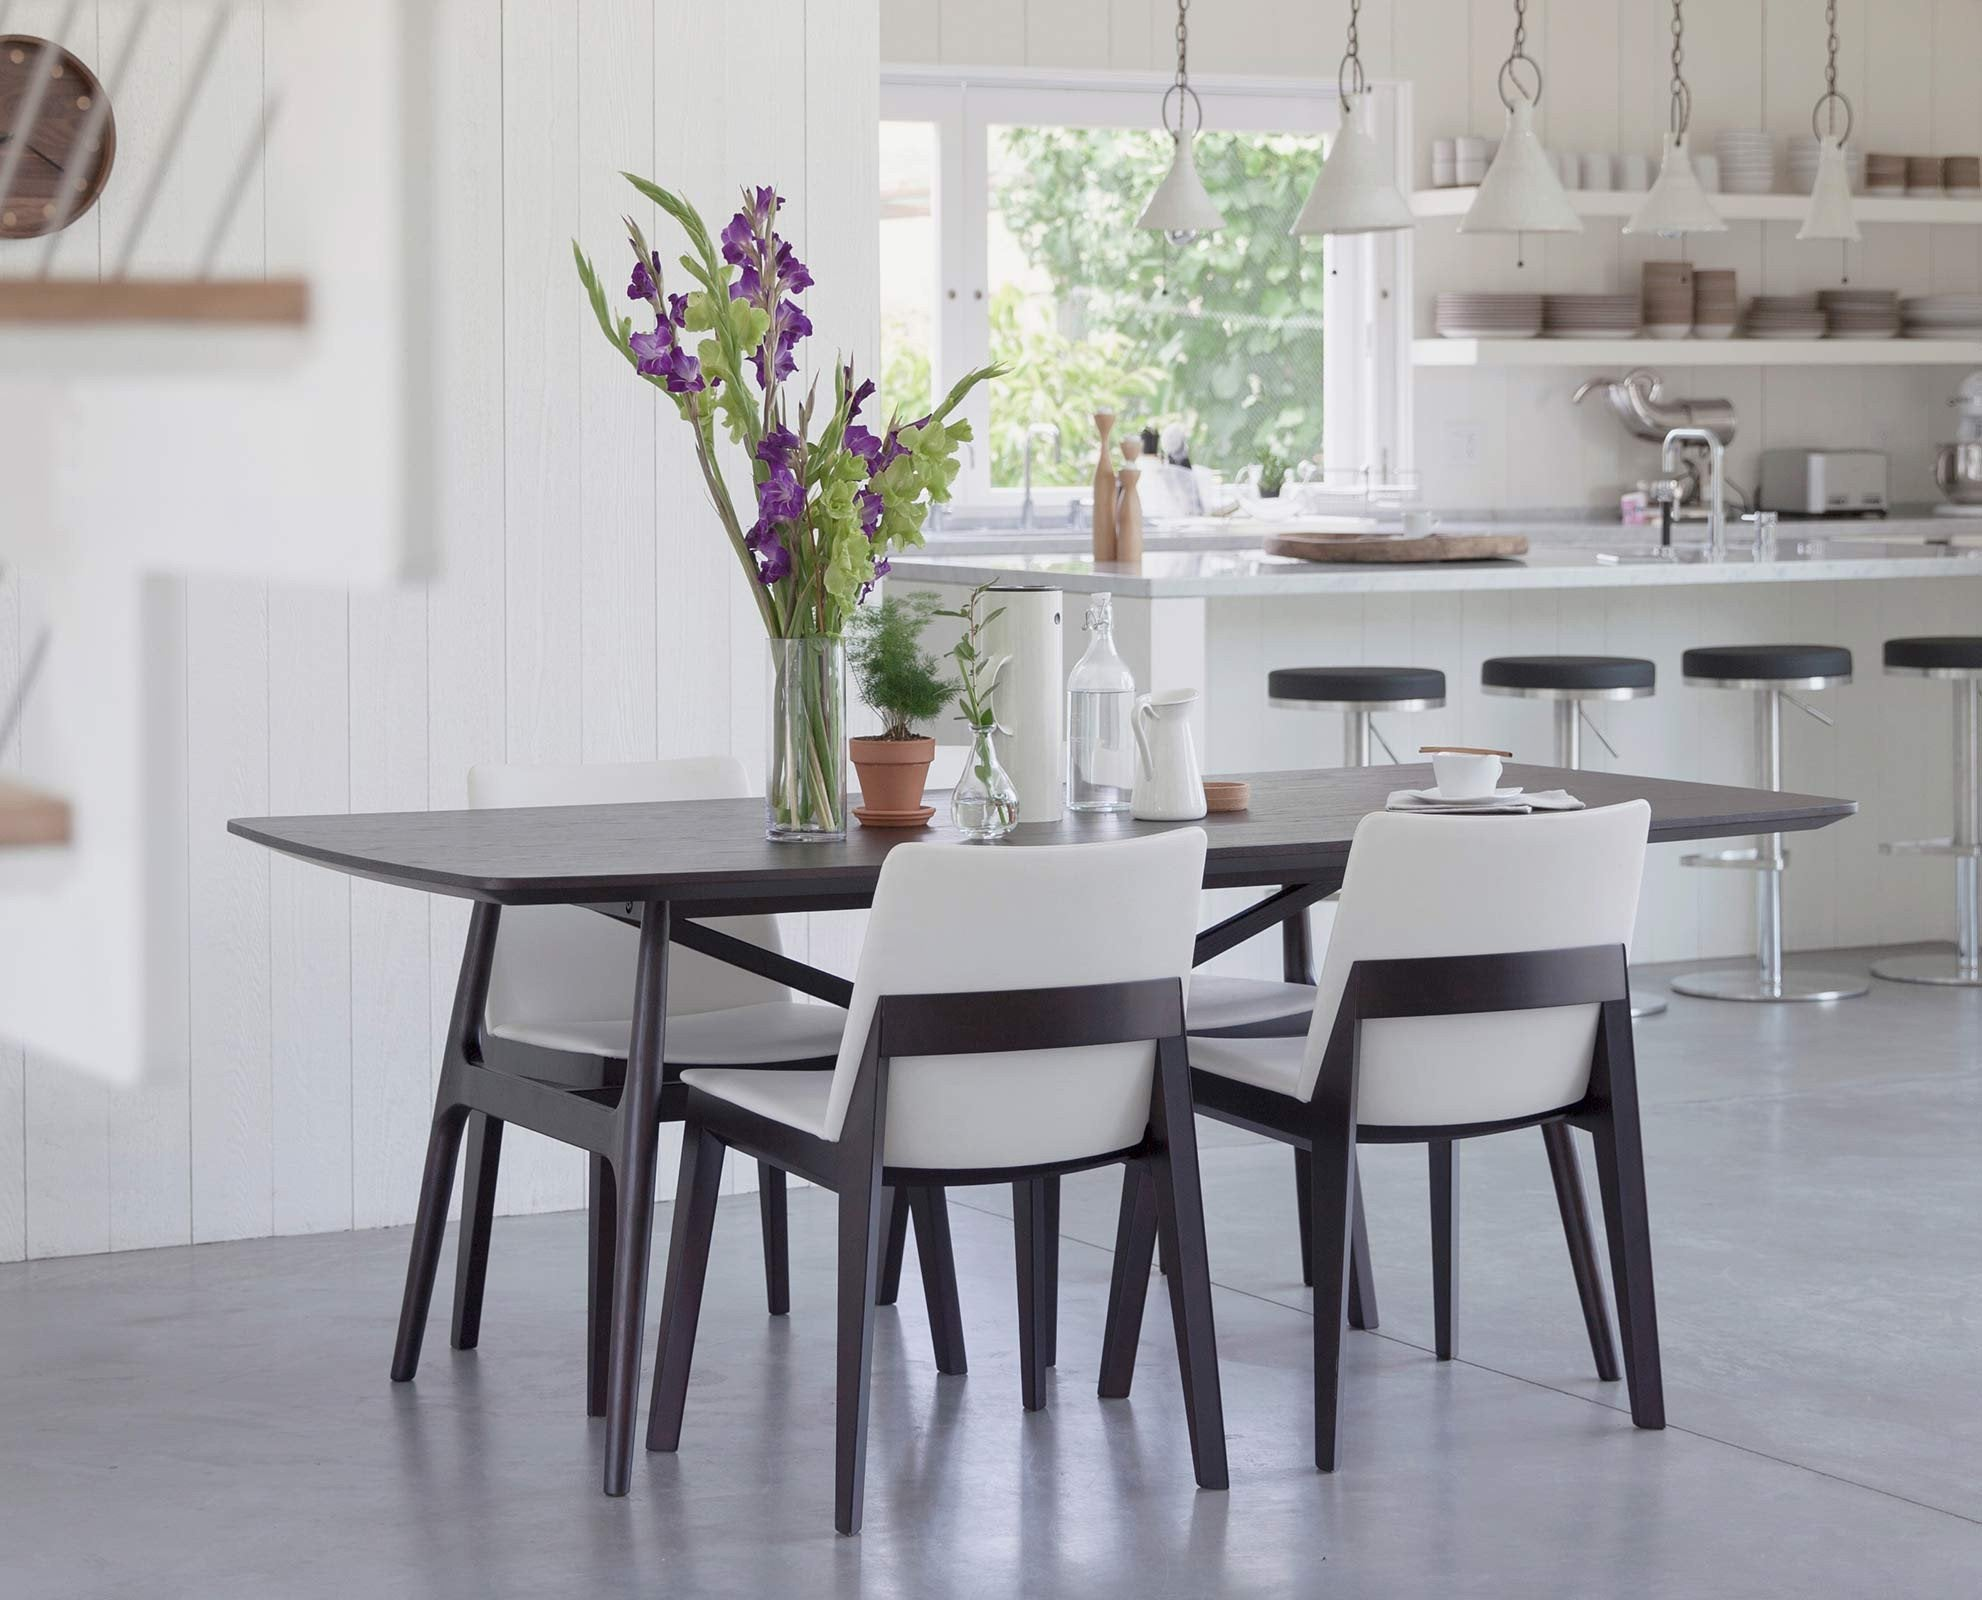 This dining table is designed in classic this dining table is designed - Elegant Traditional Scandinavian Style Dining Table Classic Modern Scandinavian Dining Room Design